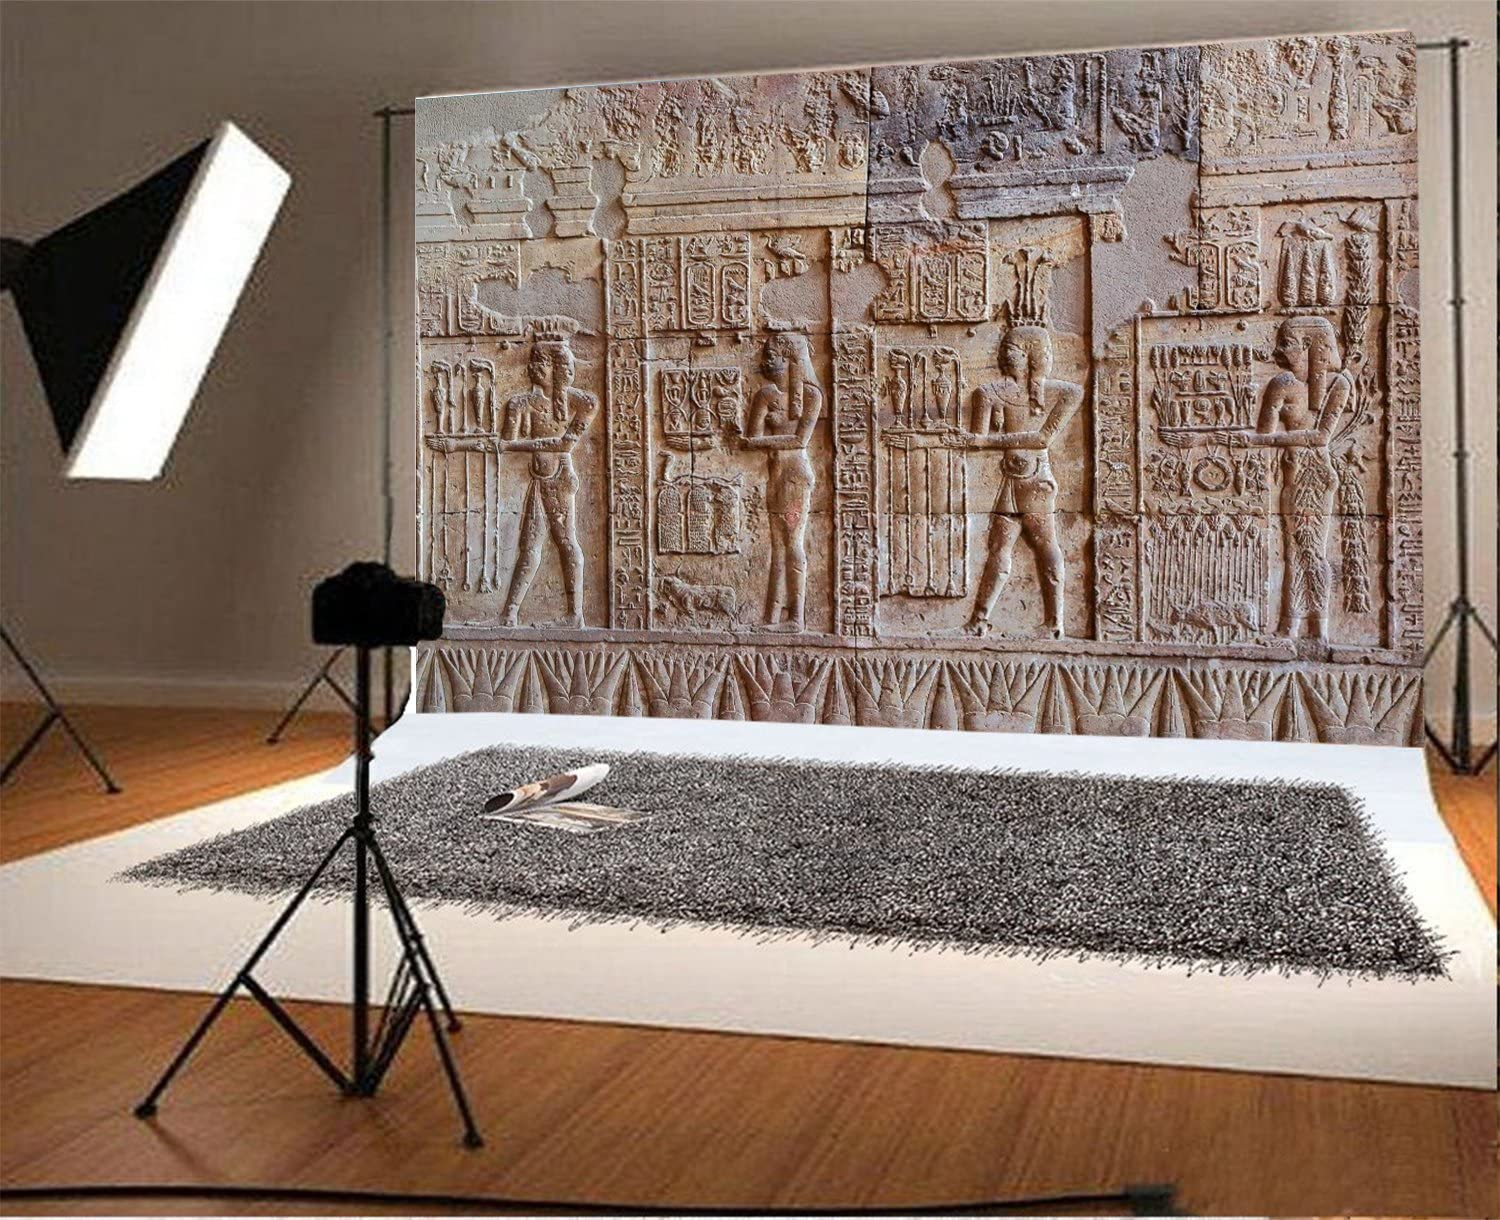 Laeacco 7x5FT Vinyl Backdrop Photography Background Egypt Mural Ancient Exterior Wall Stone Hieroglyphic Carvings Egyptian Pharaoh Portrait Art Shooting Background Photo Studio Props